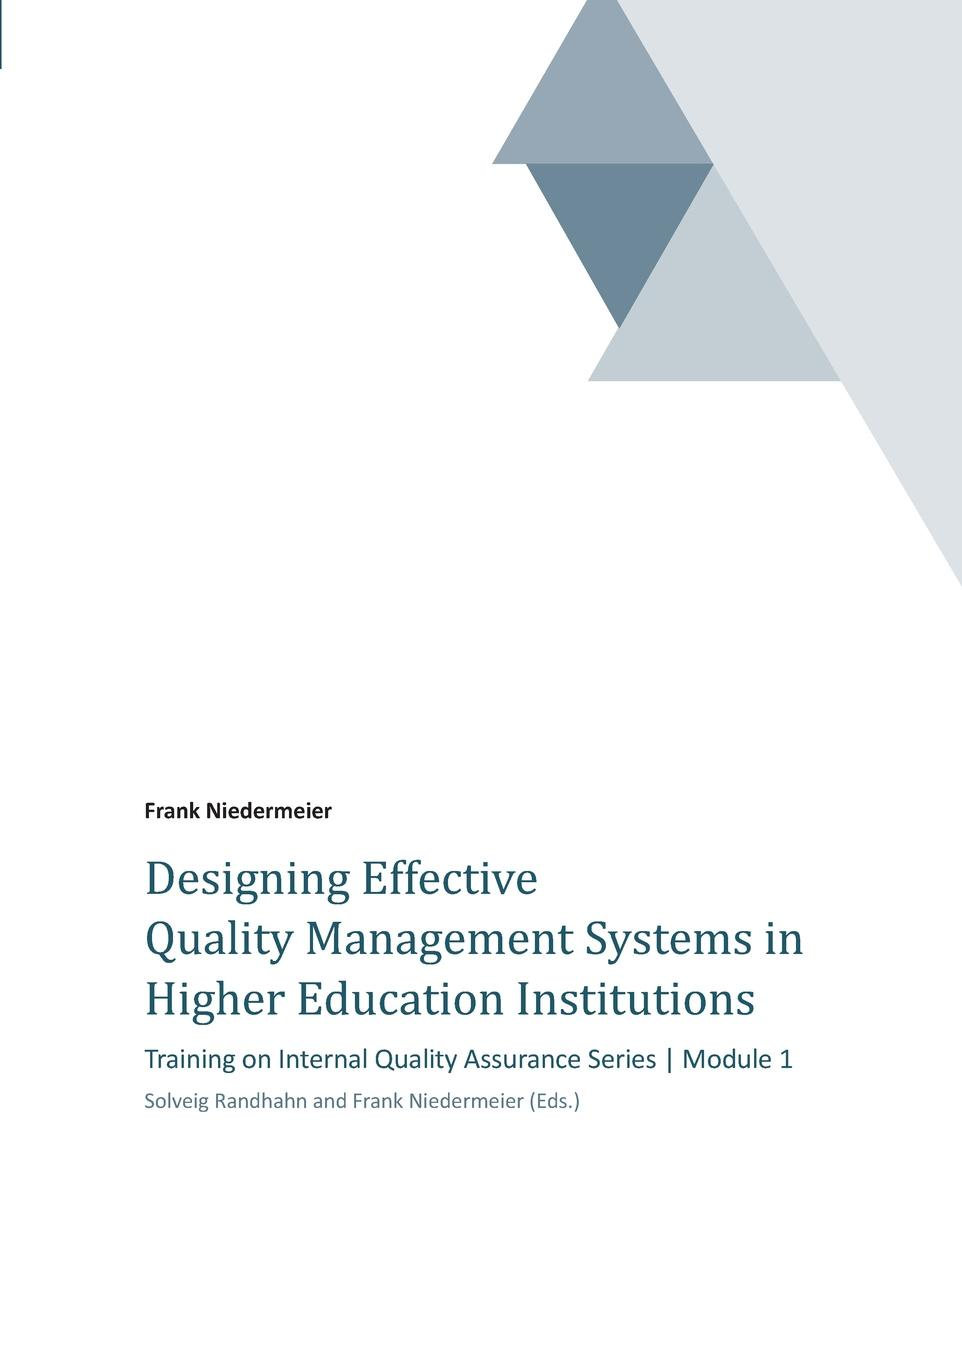 Frank Niedermeier Designing Effective Quality Management Systems in Higher Education Institutions